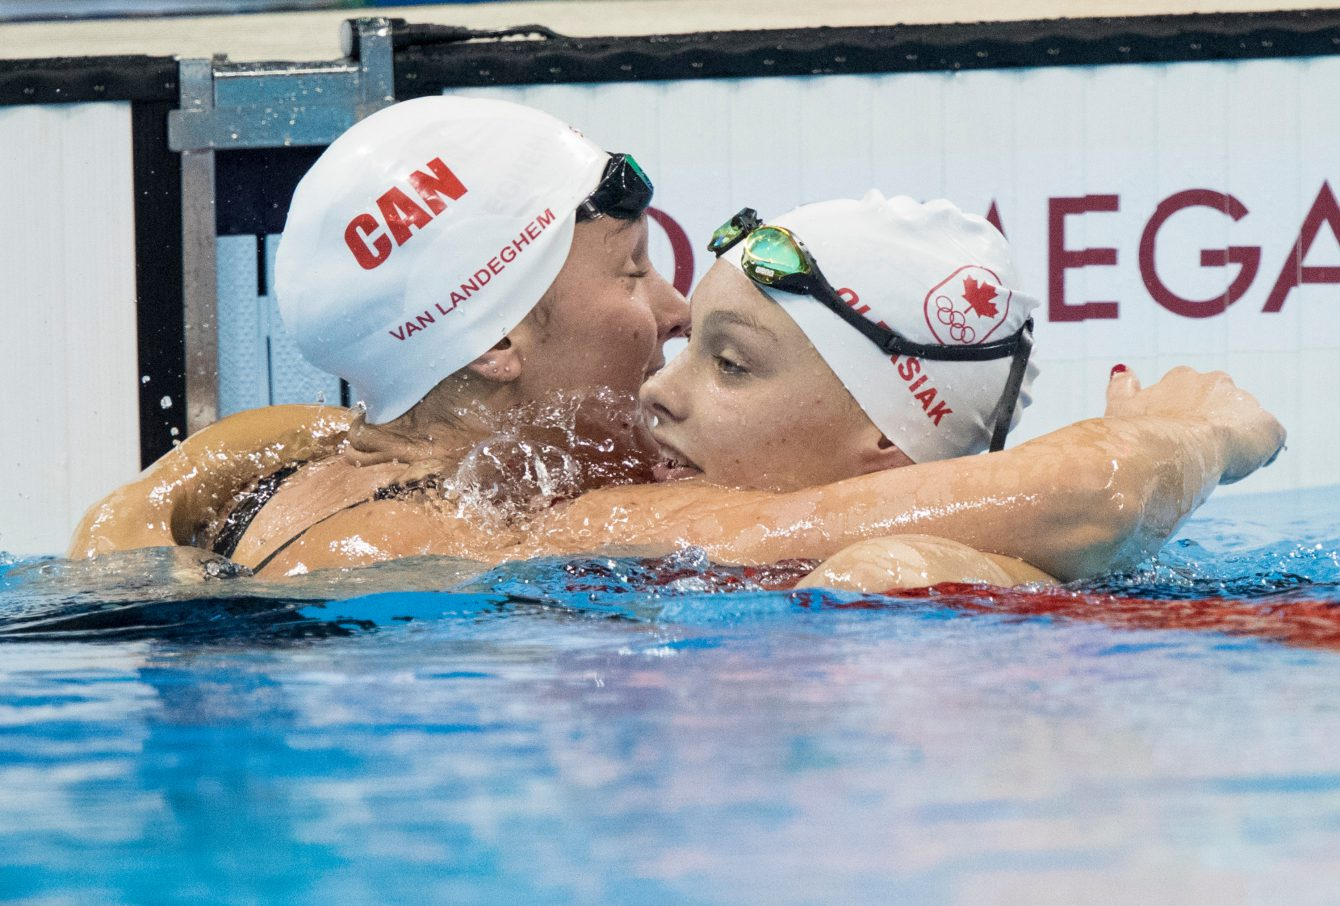 Canada's Penny Oleksiak, right, gets a hug from teammate Chantal Van Landeghem after Oleksiak qualified for the women's 100m freestyle final at the Olympic games in Rio de Janeiro, Brazil, Wednesday, August 10, 2016. COC Photo by Jason Ransom